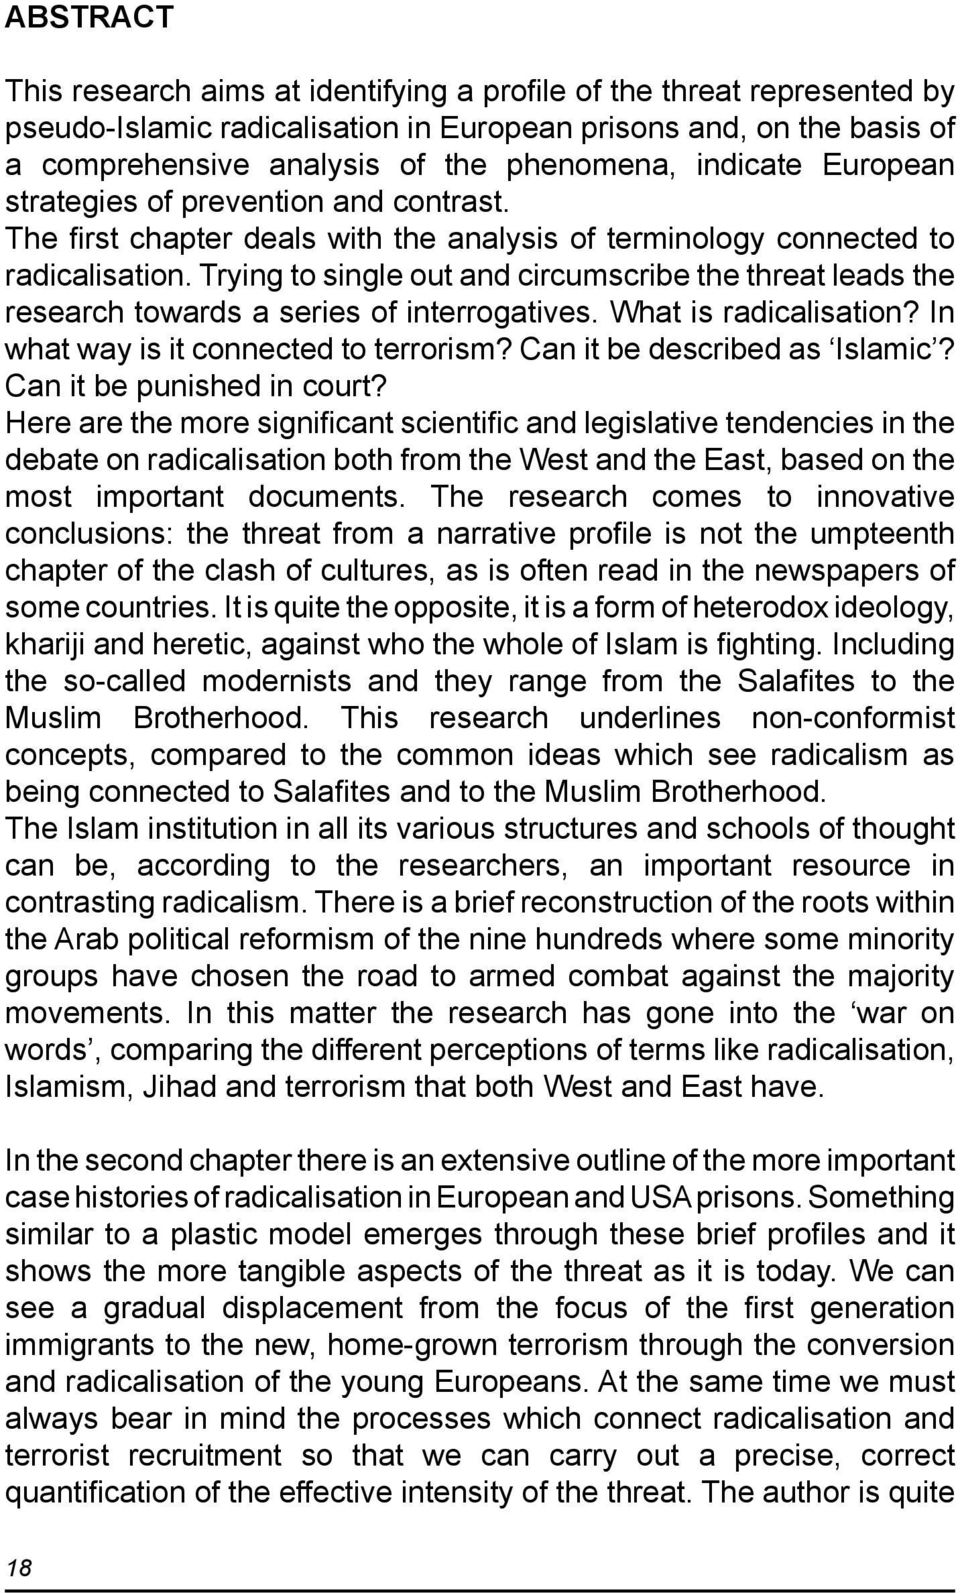 Trying to single out and circumscribe the threat leads the research towards a series of interrogatives. What is radicalisation? In what way is it connected to terrorism?